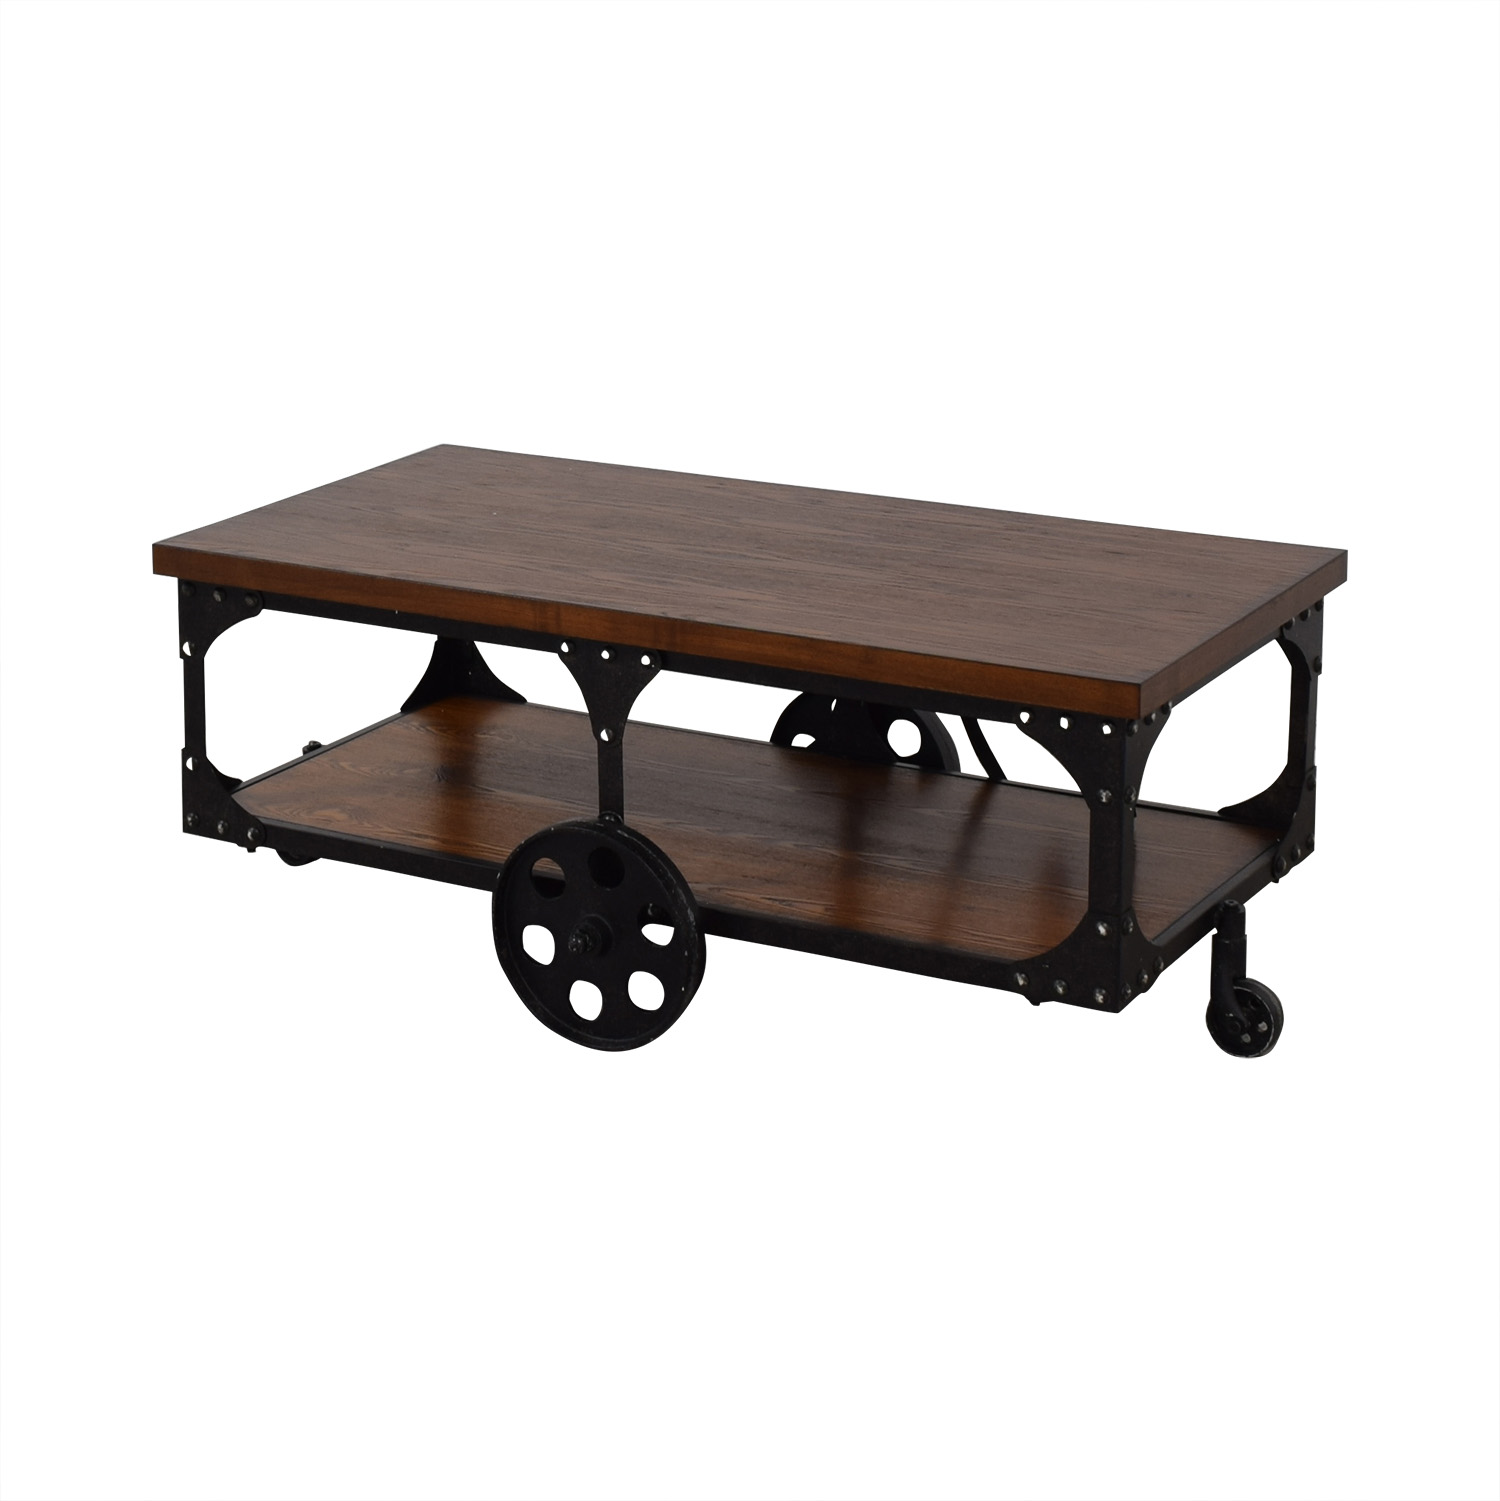 shop Coaster Fine Furniture Coaster Fine Furniture Coffee Table with Casters online